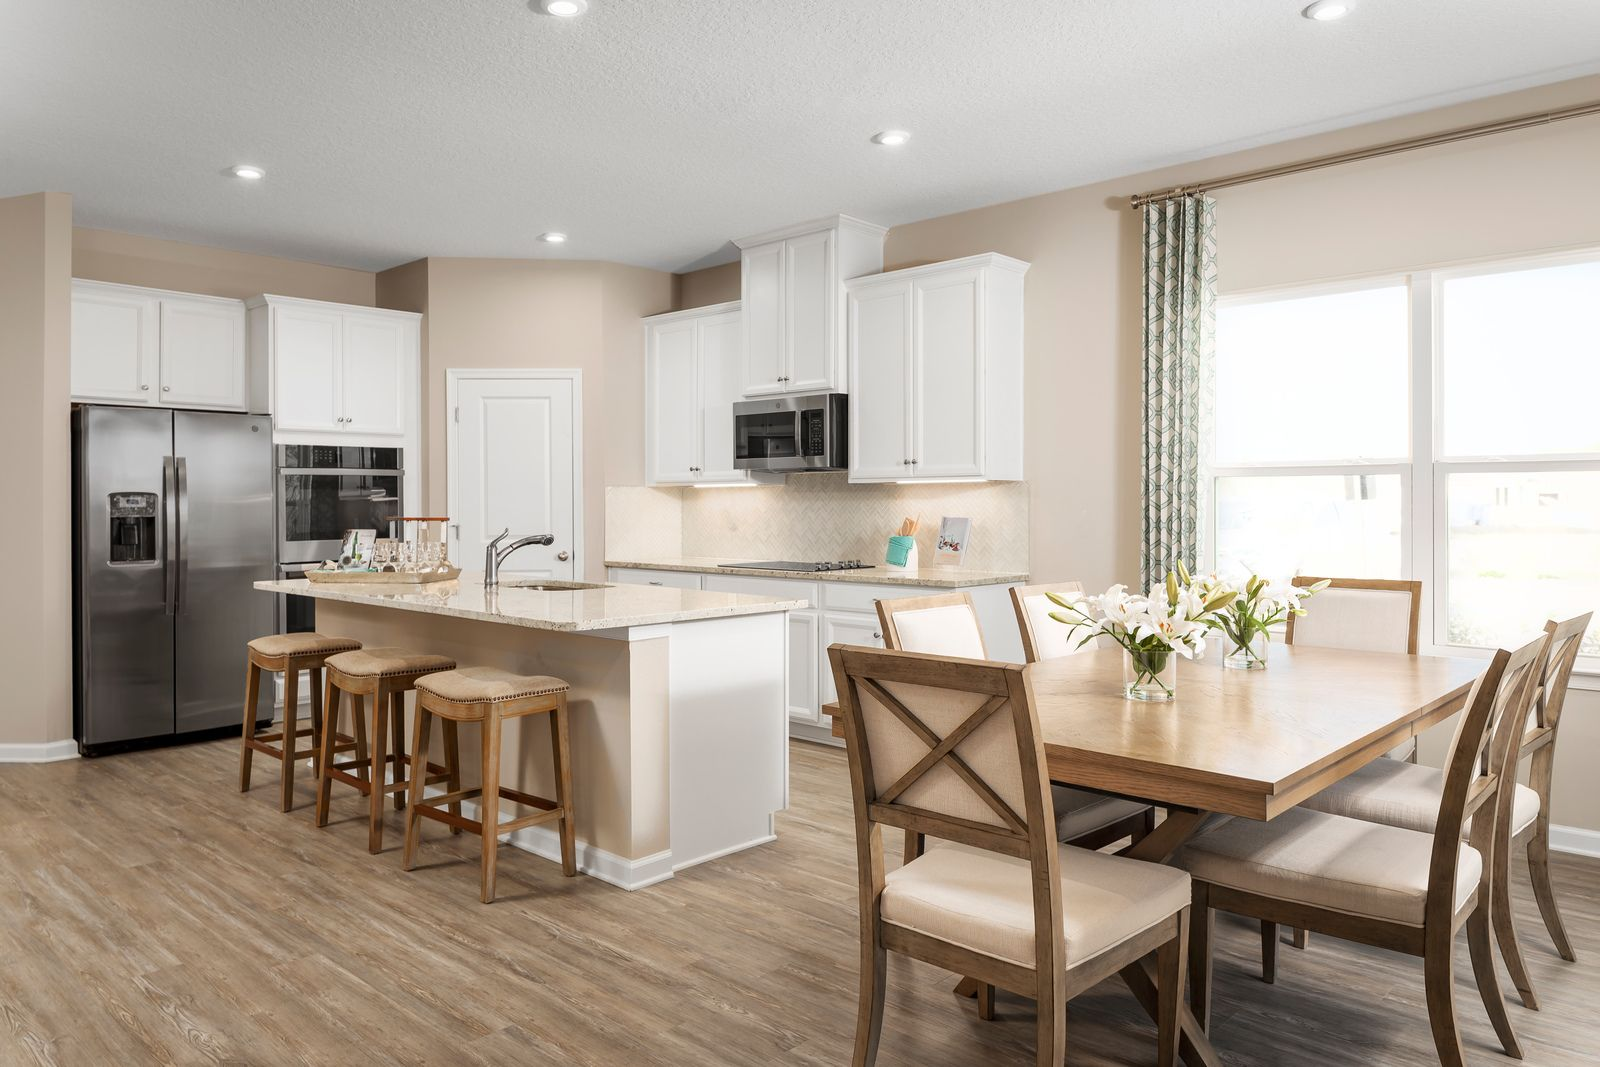 Kitchen featured in the Panama By Ryan Homes in Orlando, FL